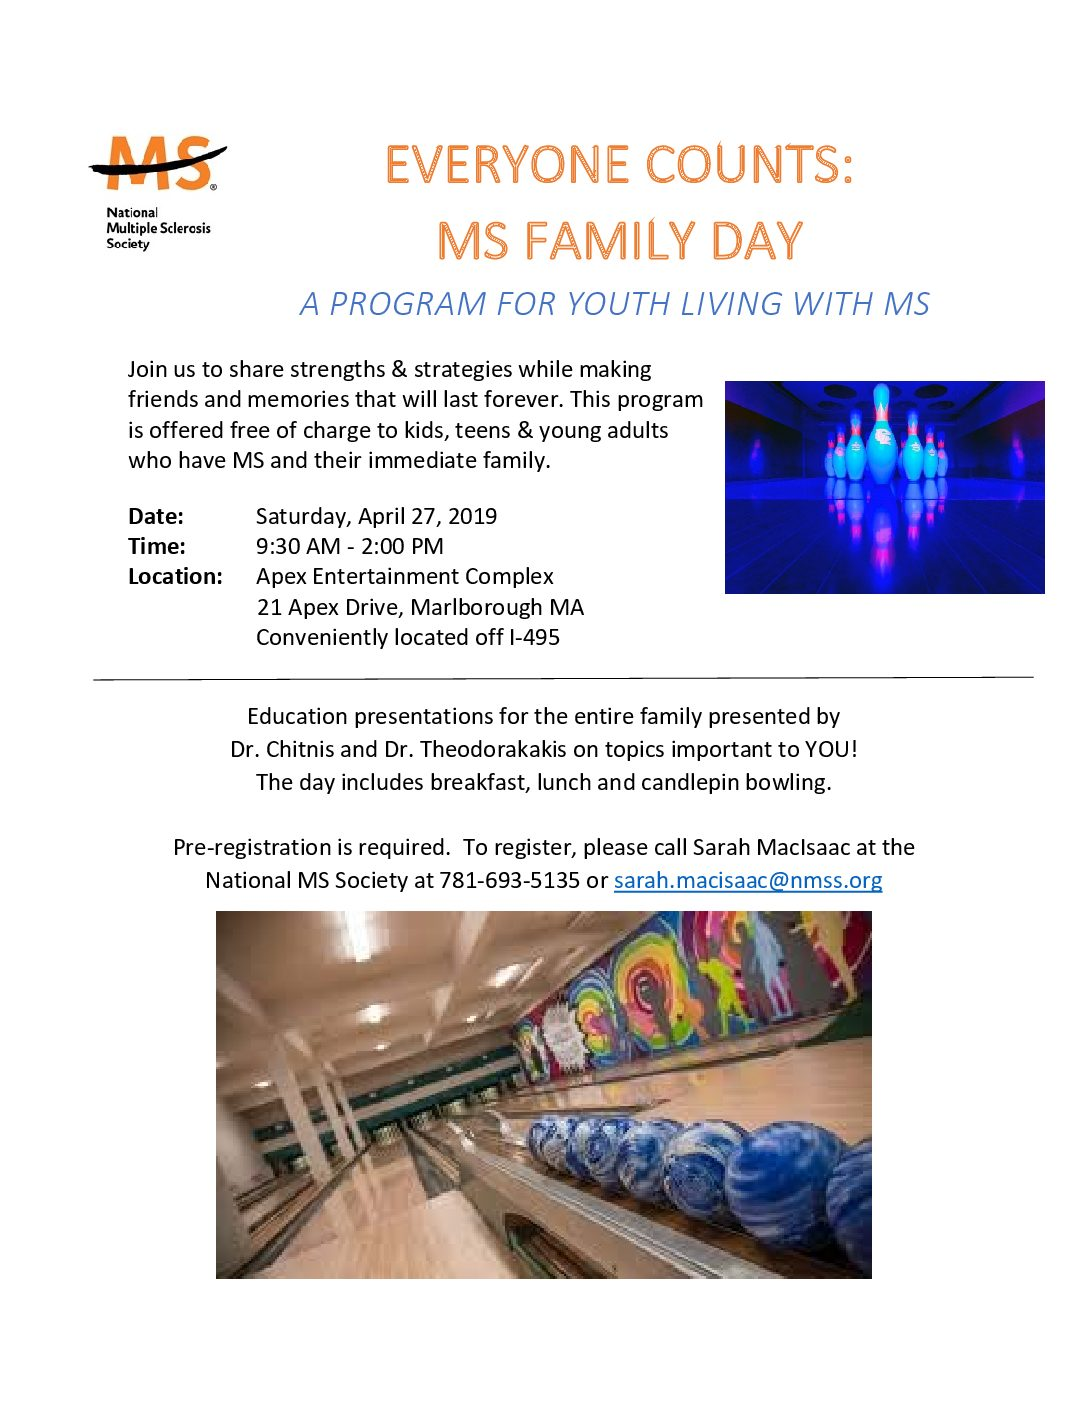 Everyone Counts: MS Family Day 2019